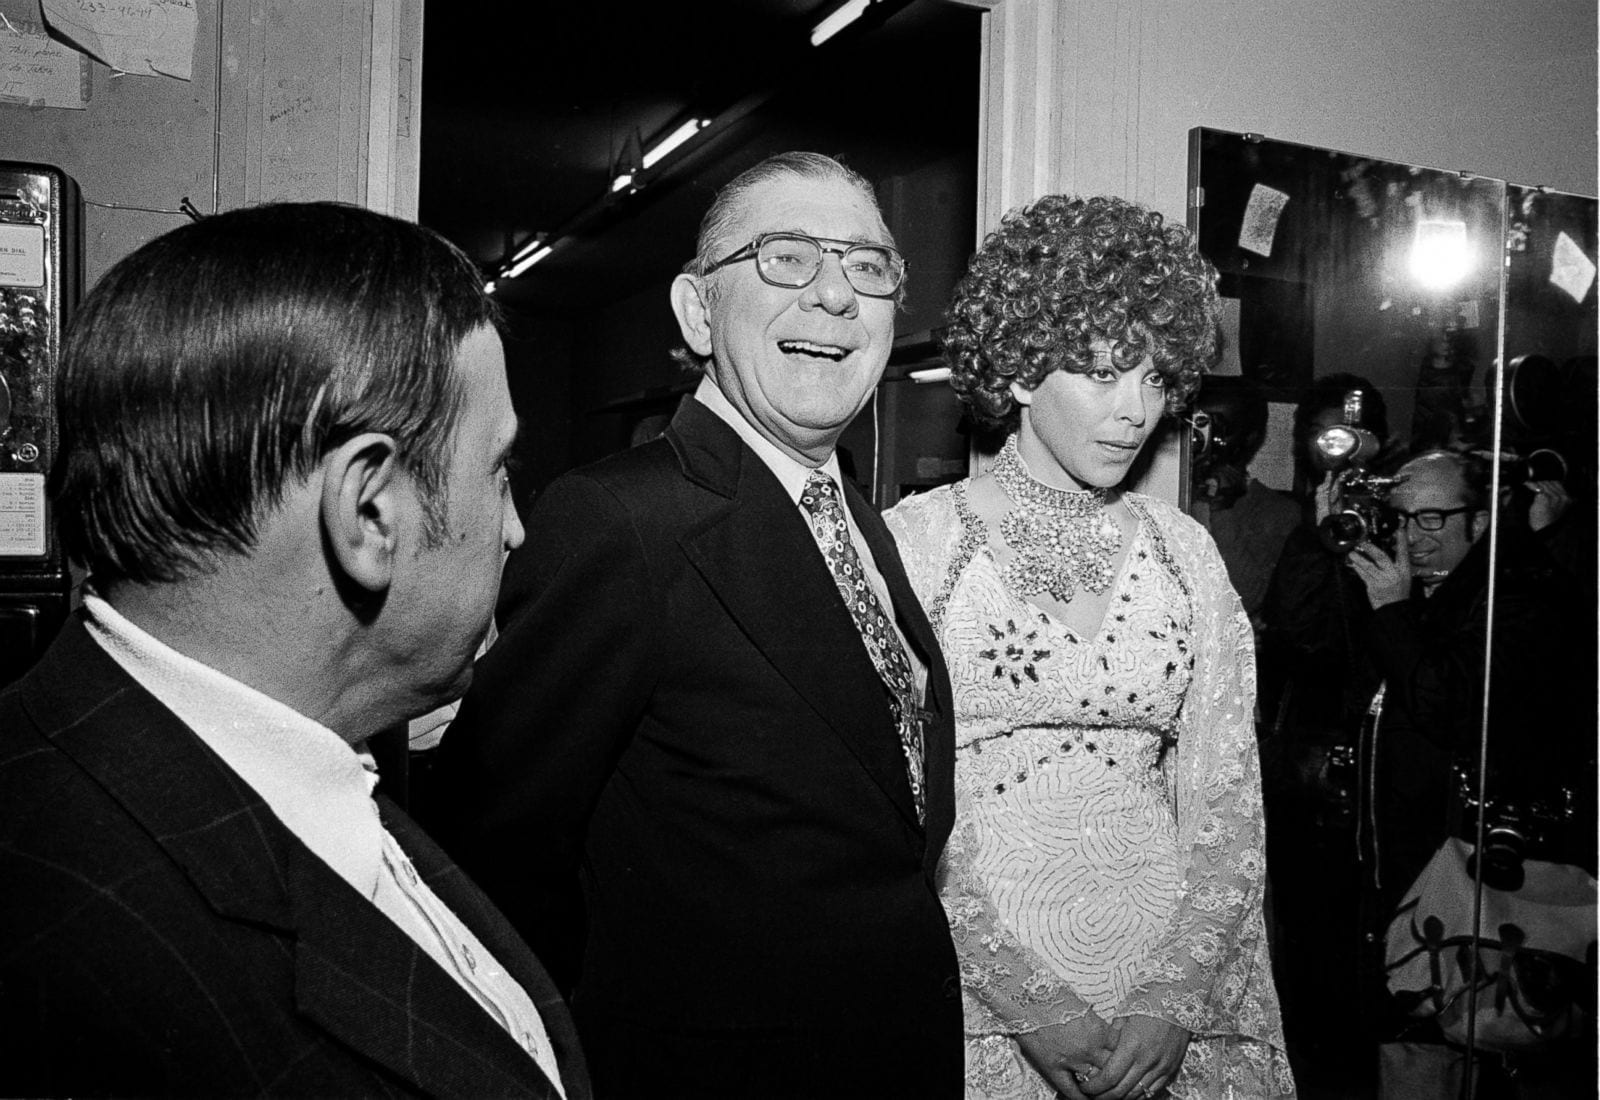 "Arkansas Rep. Wilbur D. Mills is photographed with Fanne Foxe, an infamous exotic dancer, who became known as ""The Washington Tidal Basin Bombshell,"" after she jumped into the tidal basin to escape police who had pulled over the intoxicated Mills and found Foxe in the car on Oct. 7, 1974. Despite the scandal, Mills was re-elected just a month later in November 1974."